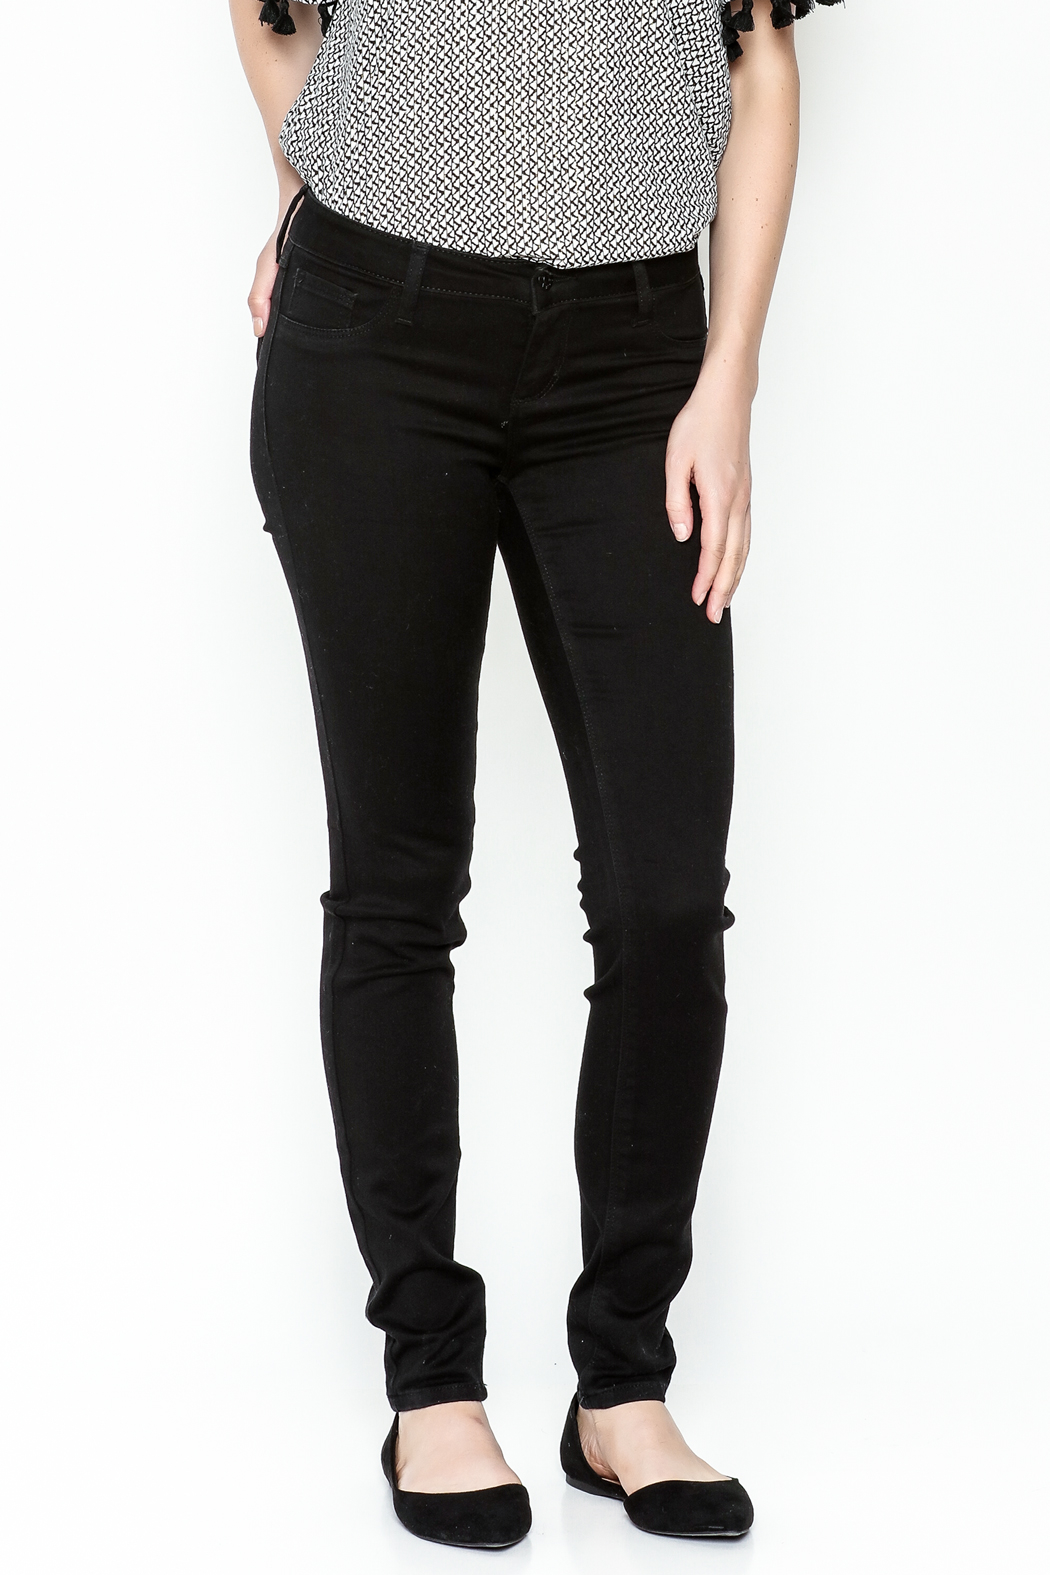 Polly & Esther Black Jeans - Main Image